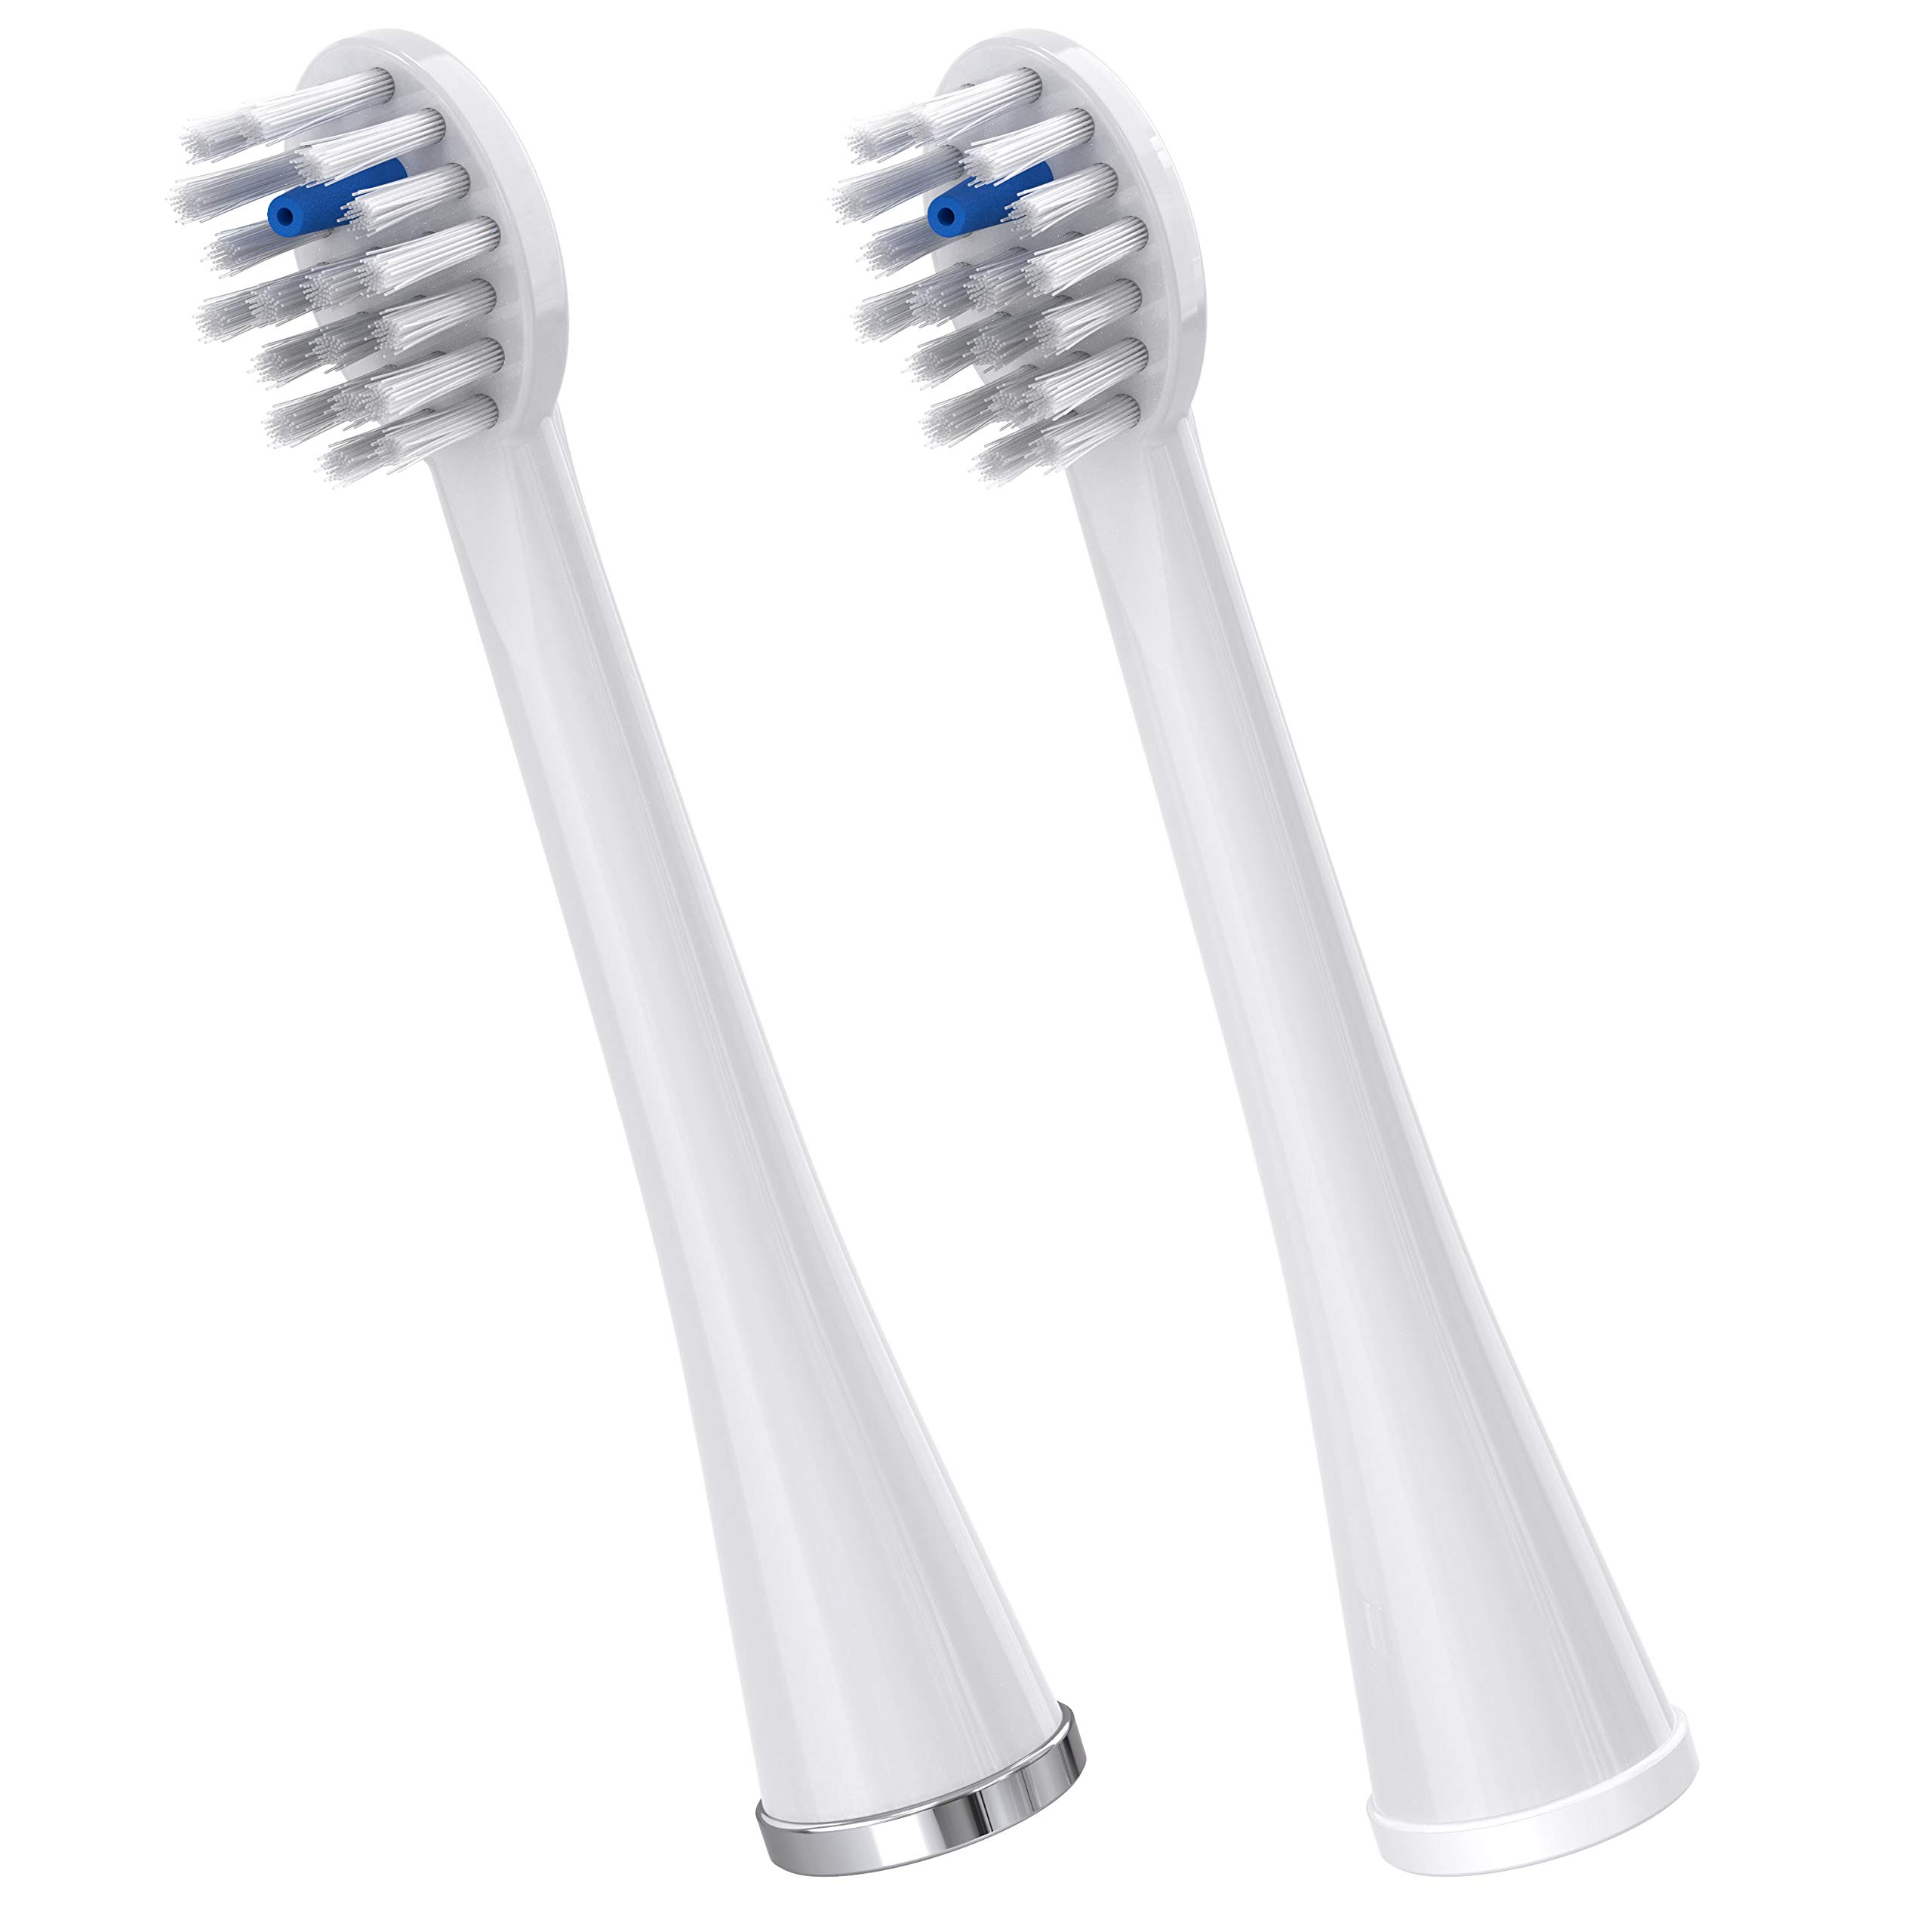 Waterpik Replacement Brush Heads for Sonic-Fusion Flossing Toothbrush SFRB-2EW, 2 Count White by Waterpik